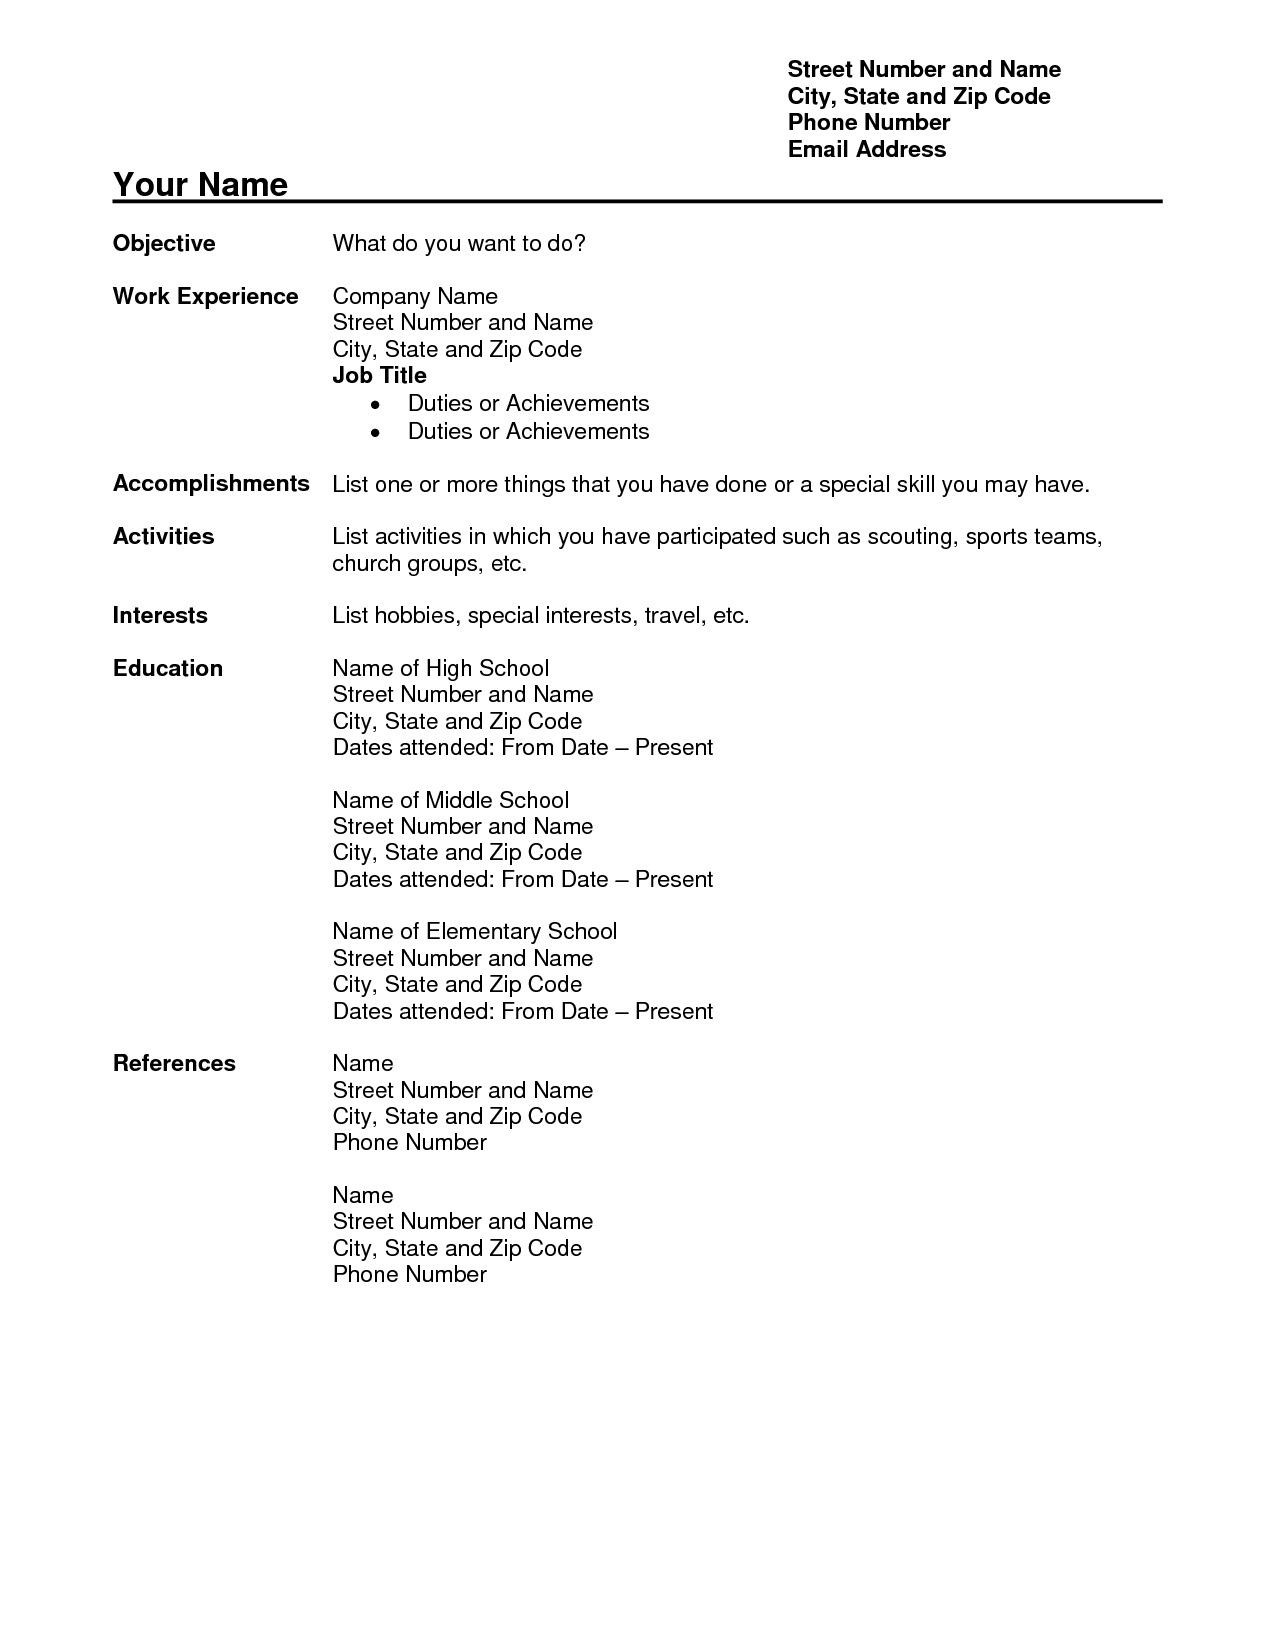 teacher resume format in word free download  Free Teacher Resume Templates Download Free Teacher Resume Templates ...